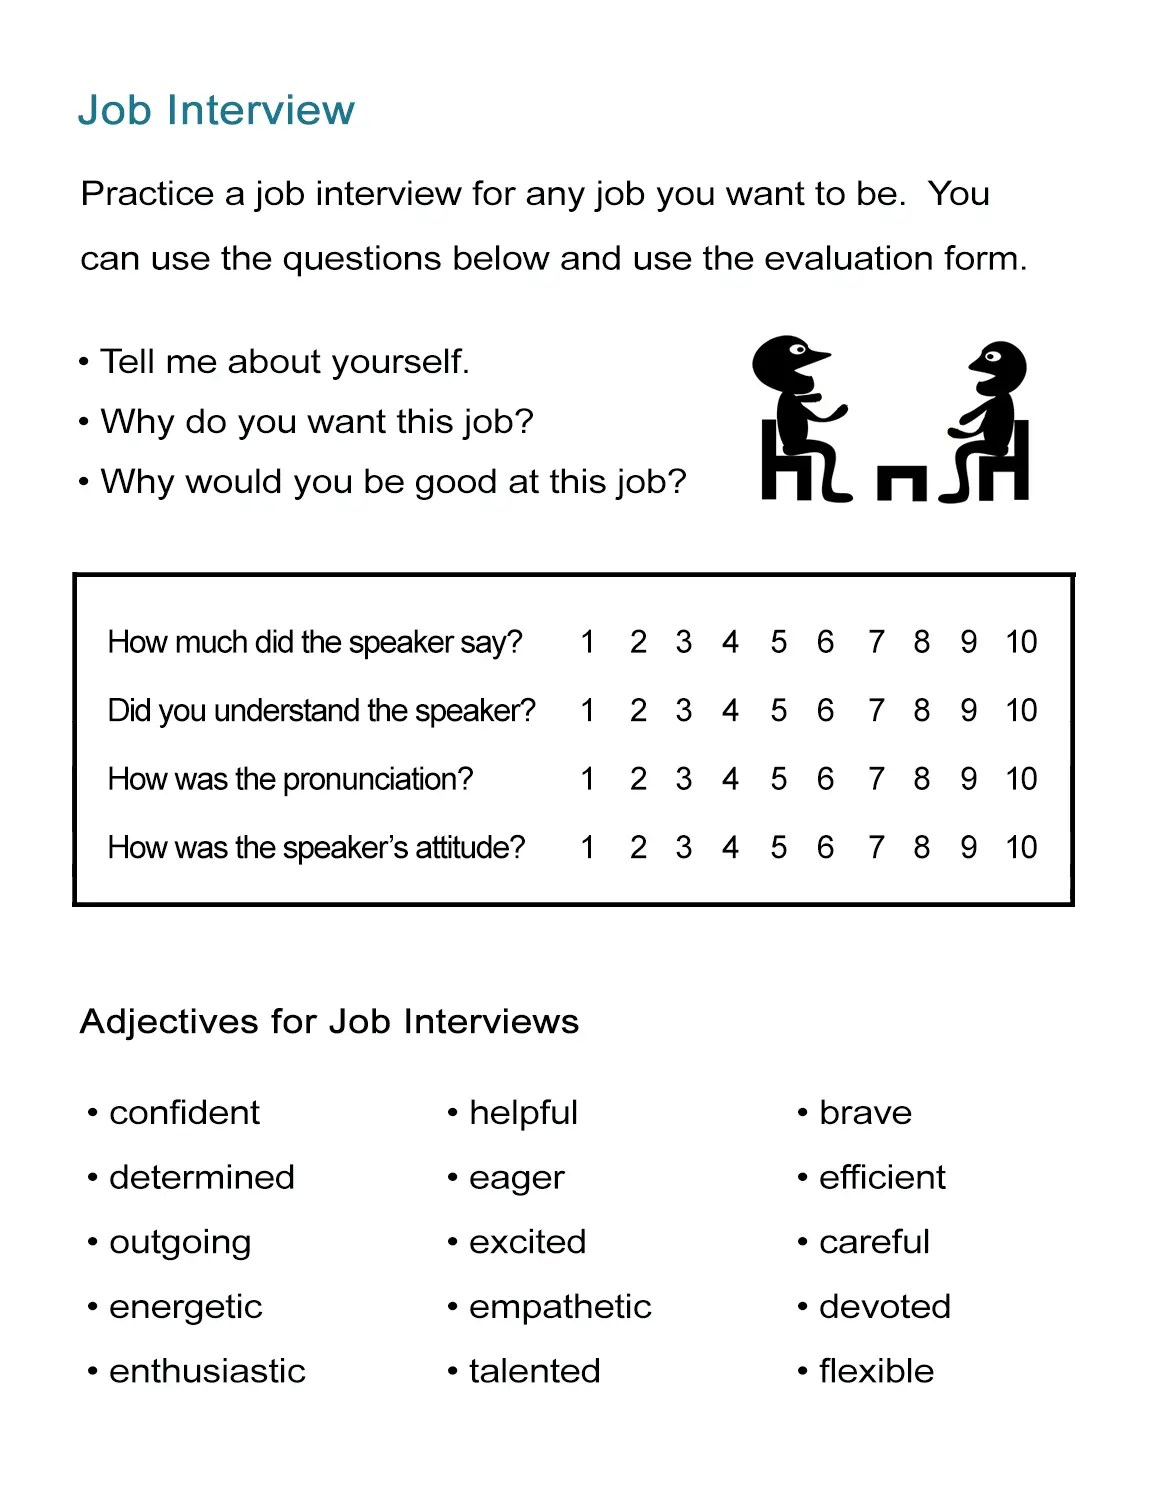 Job Interview Practice Adjectives For Resumes